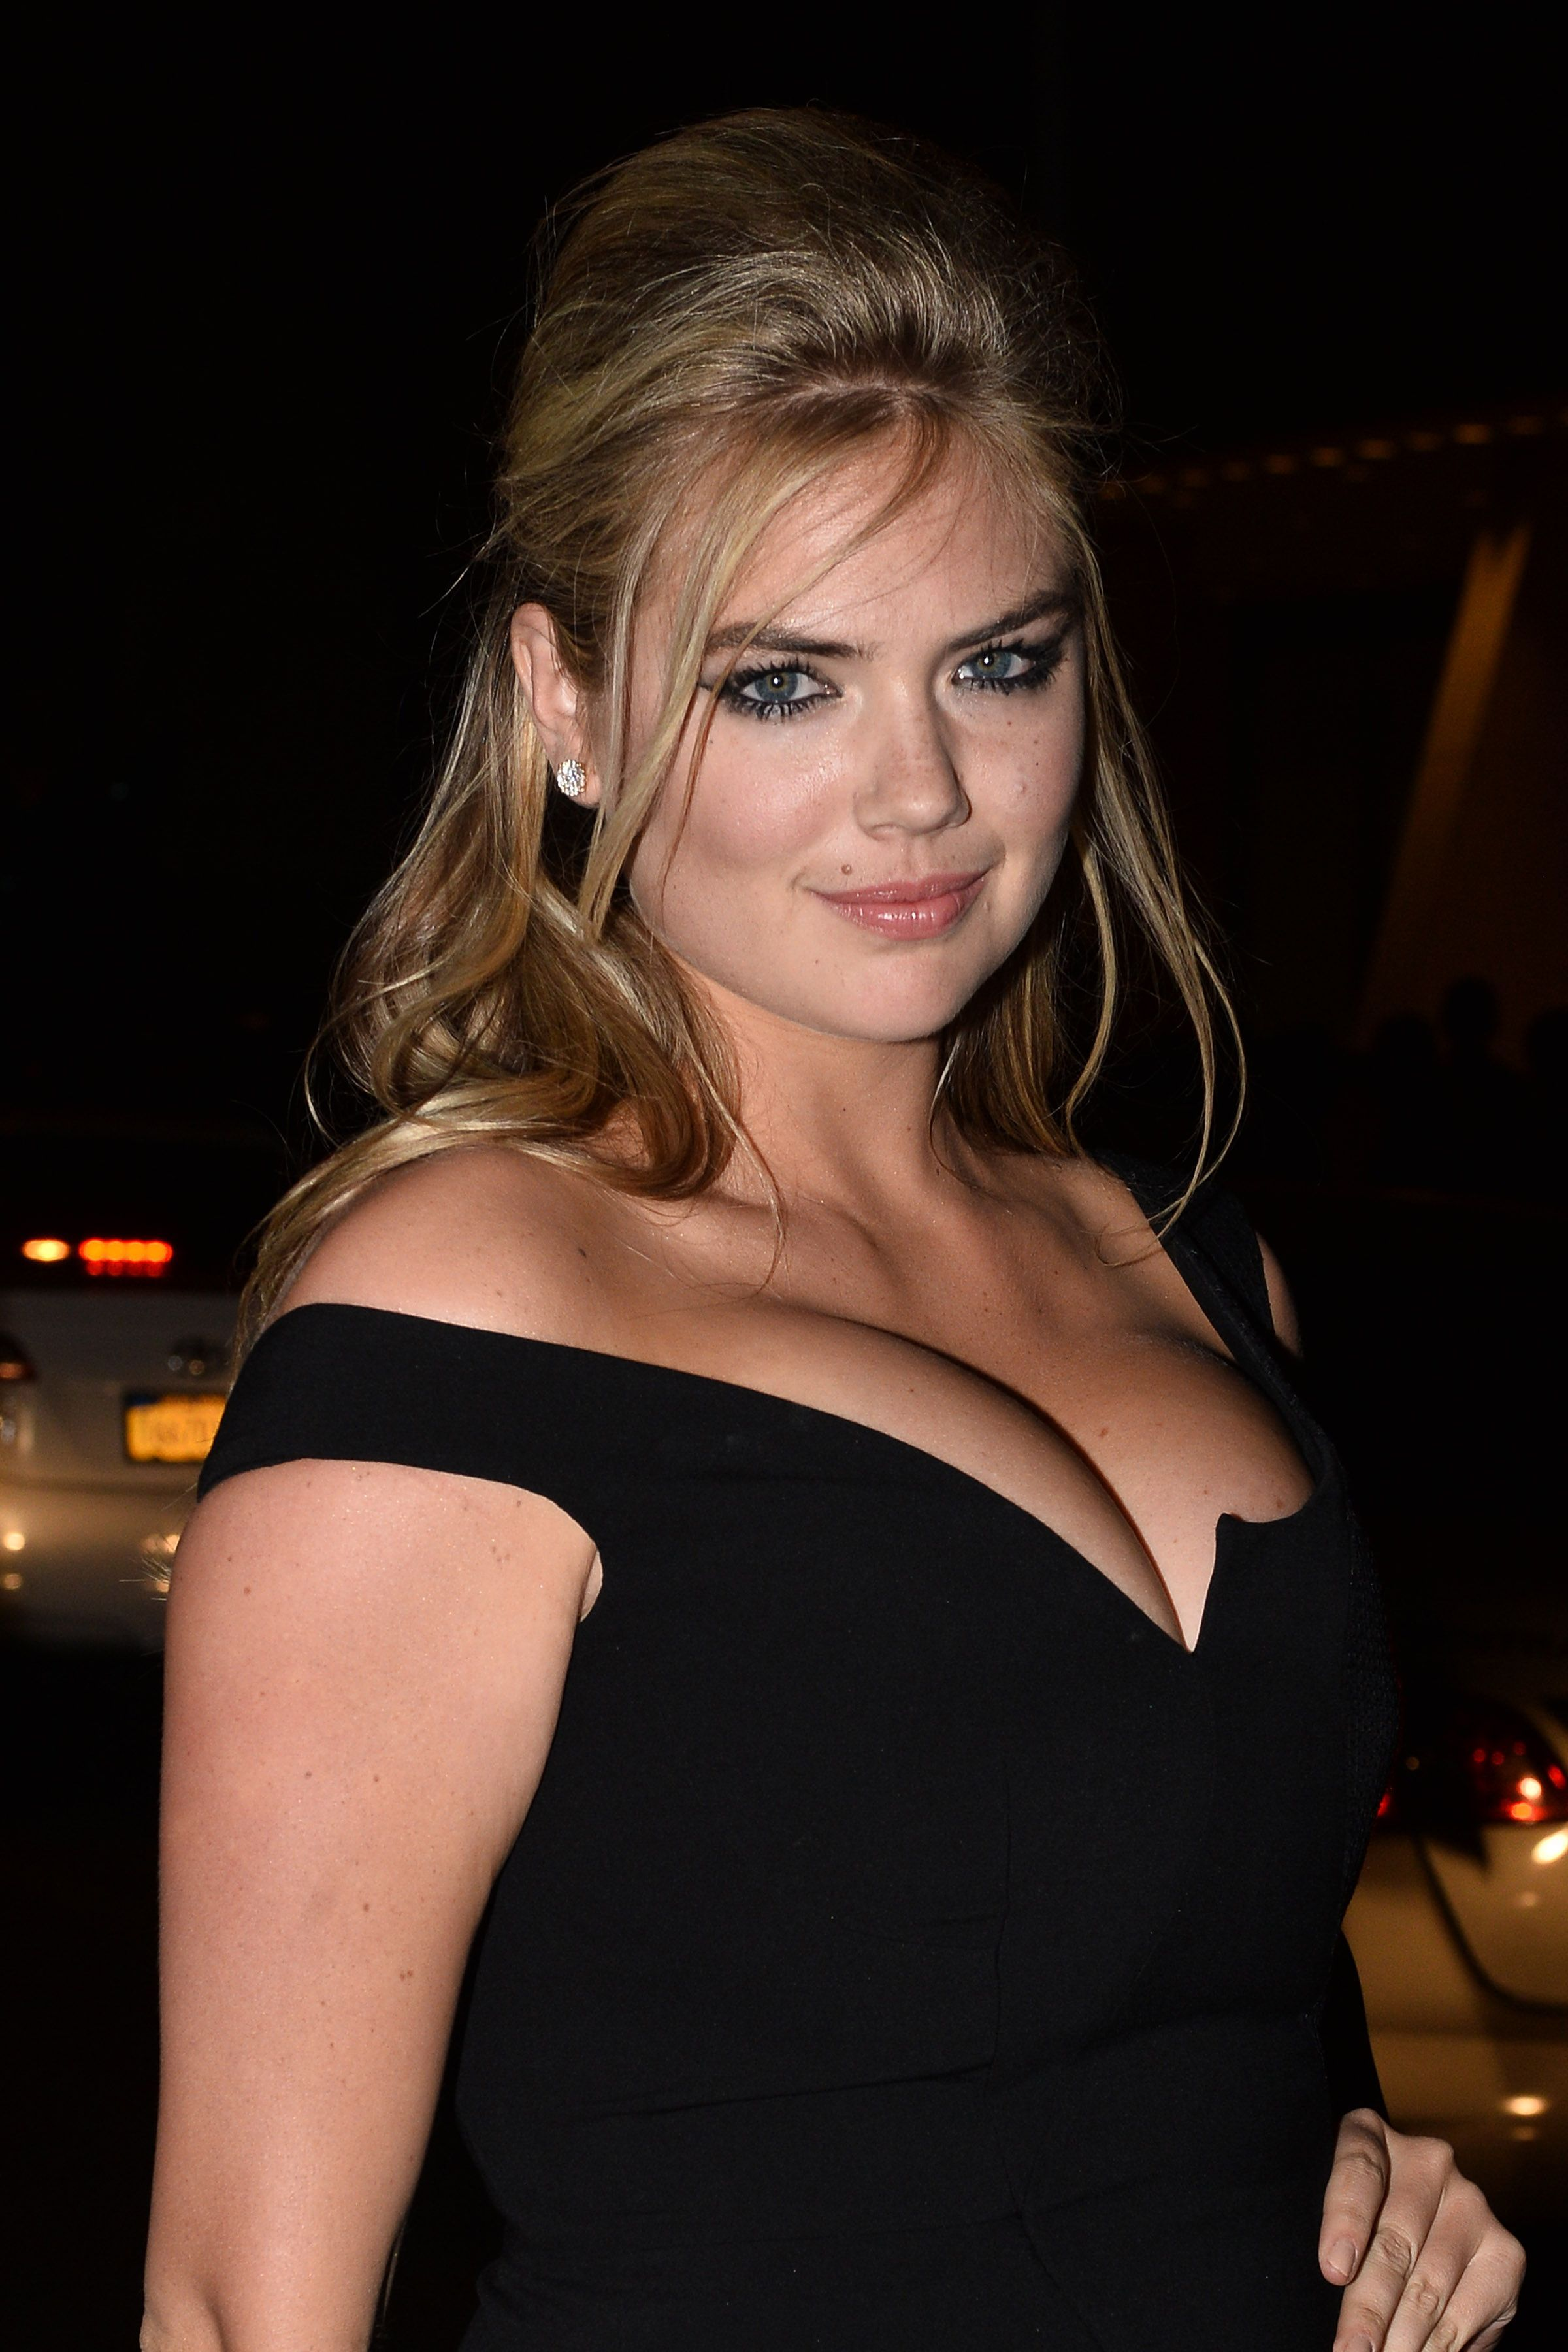 THUD! Model Kate Upton Naked • Page 3 • Fappening Sauce